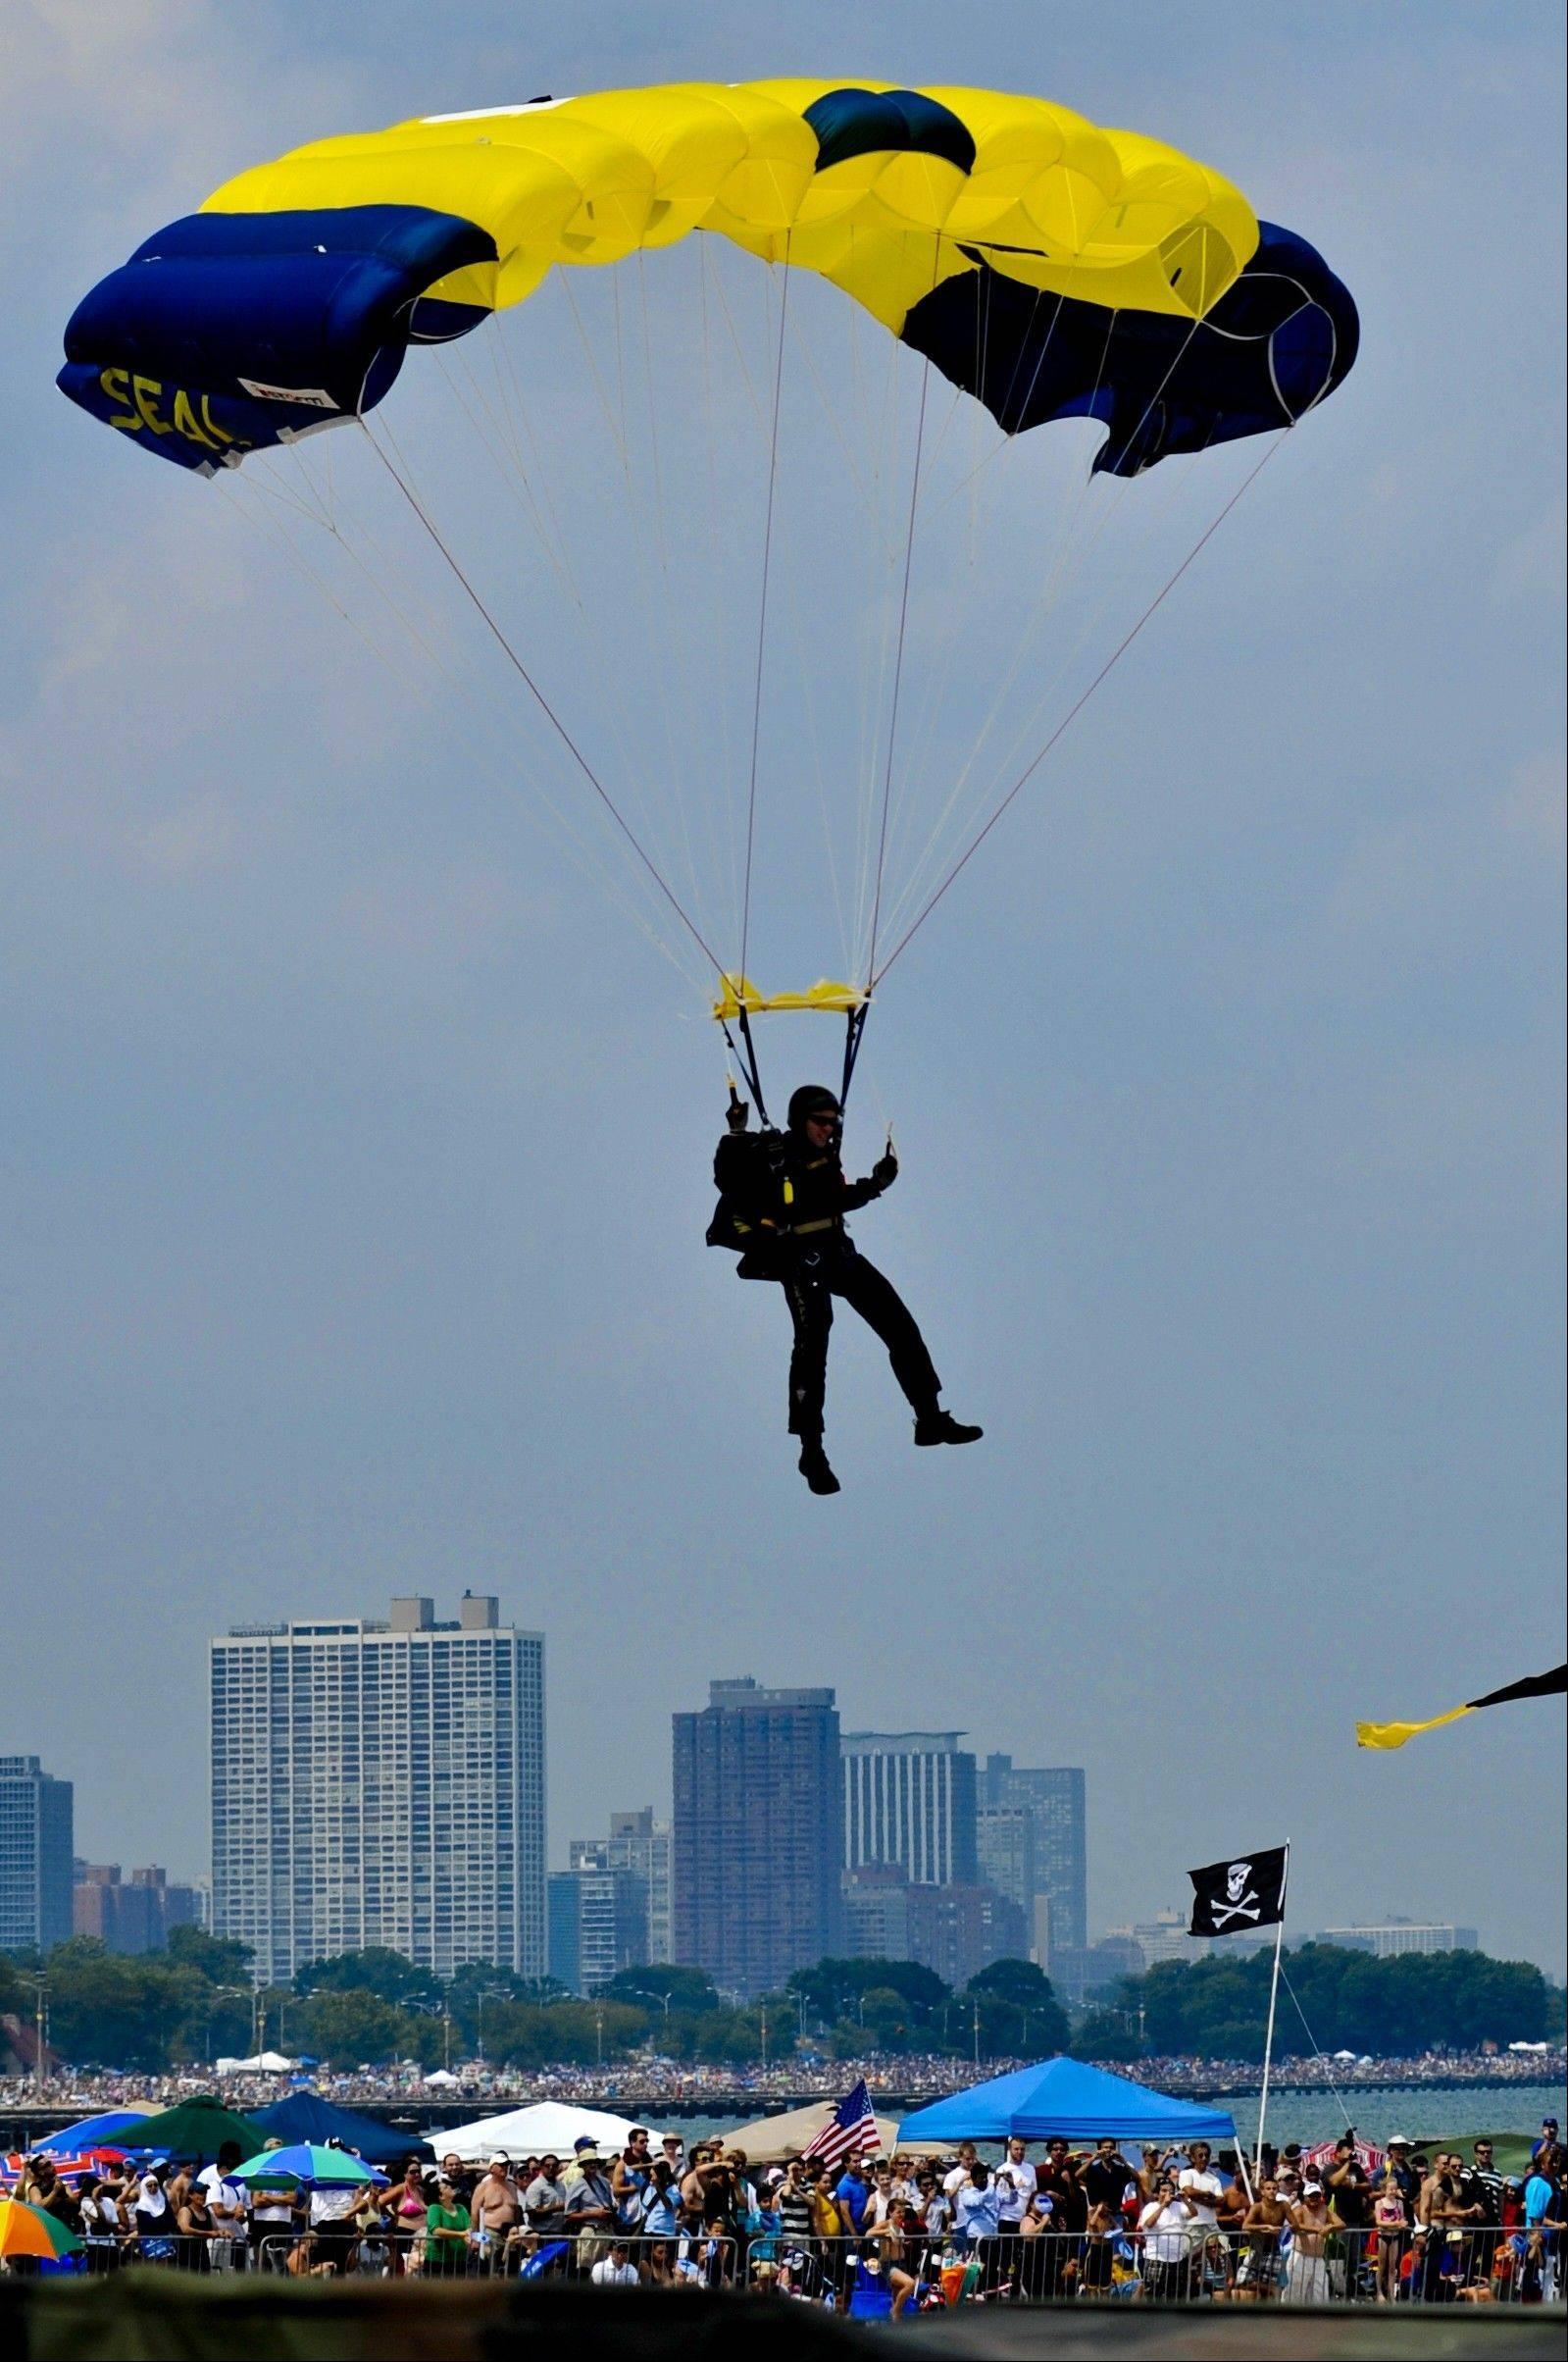 The U.S. Navy's Leap Frog parachute team lands on North Avenue Beach during the Chicago Air & Water Show.